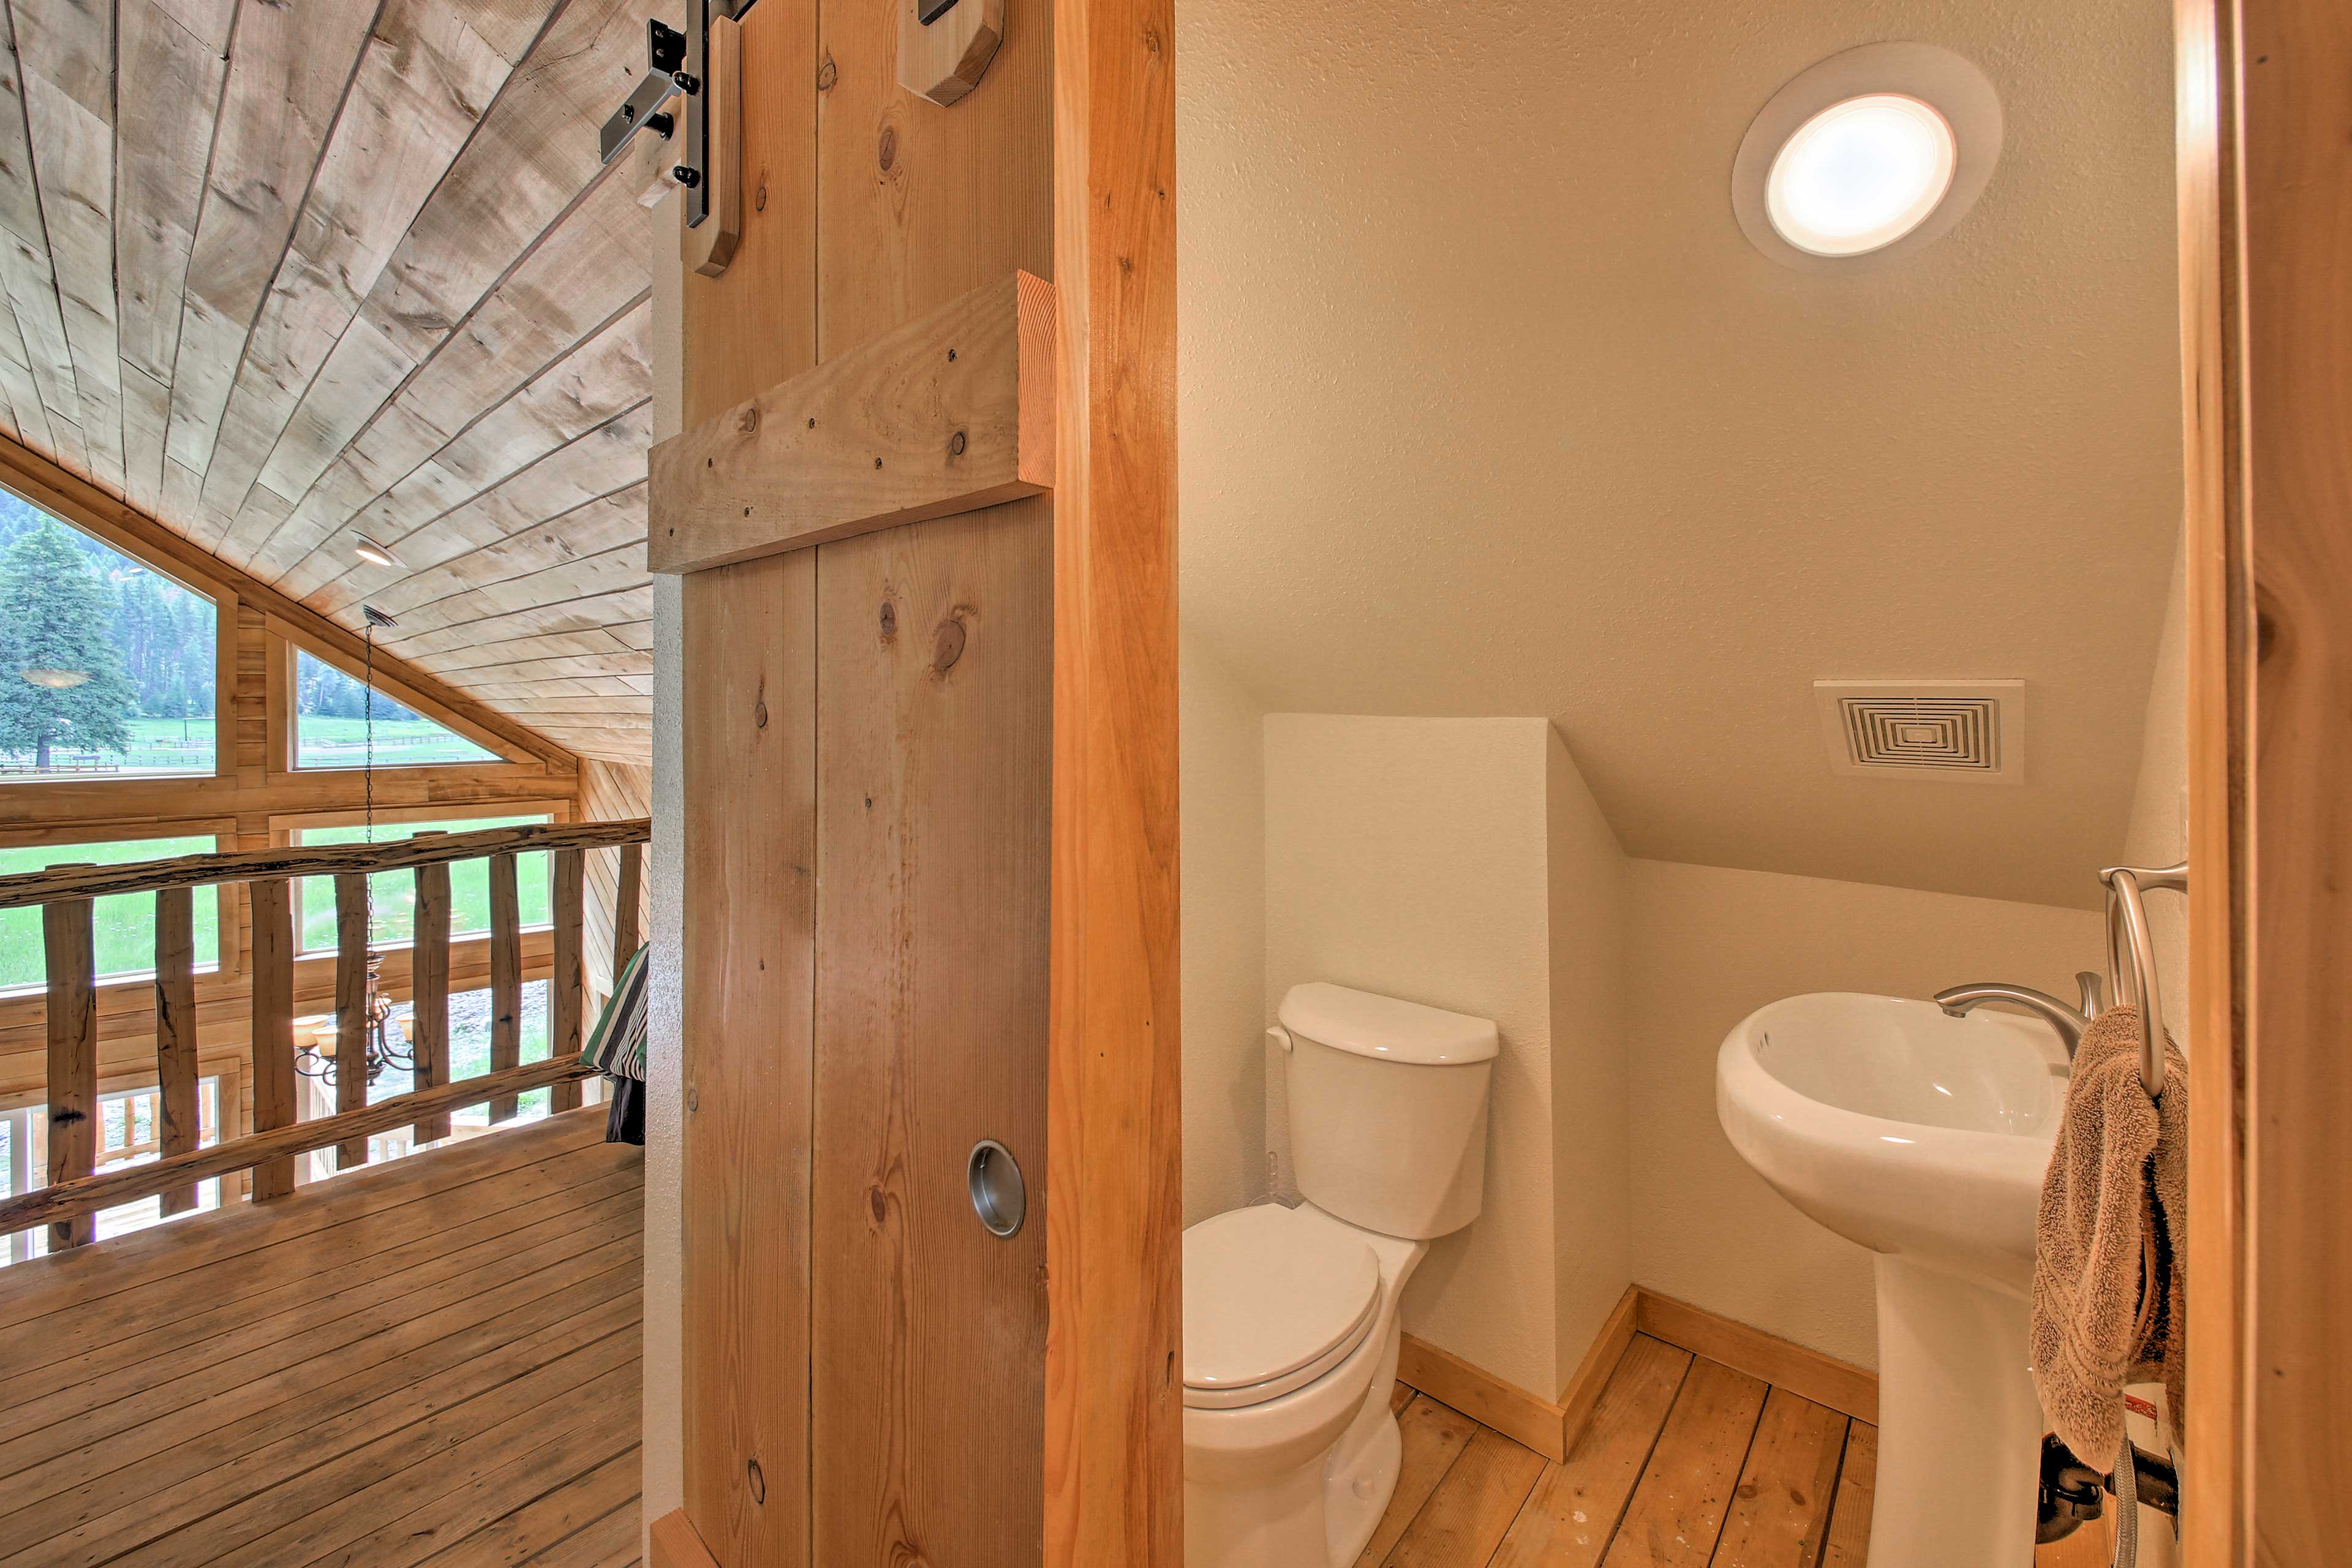 There's a half bathroom off of the loft.